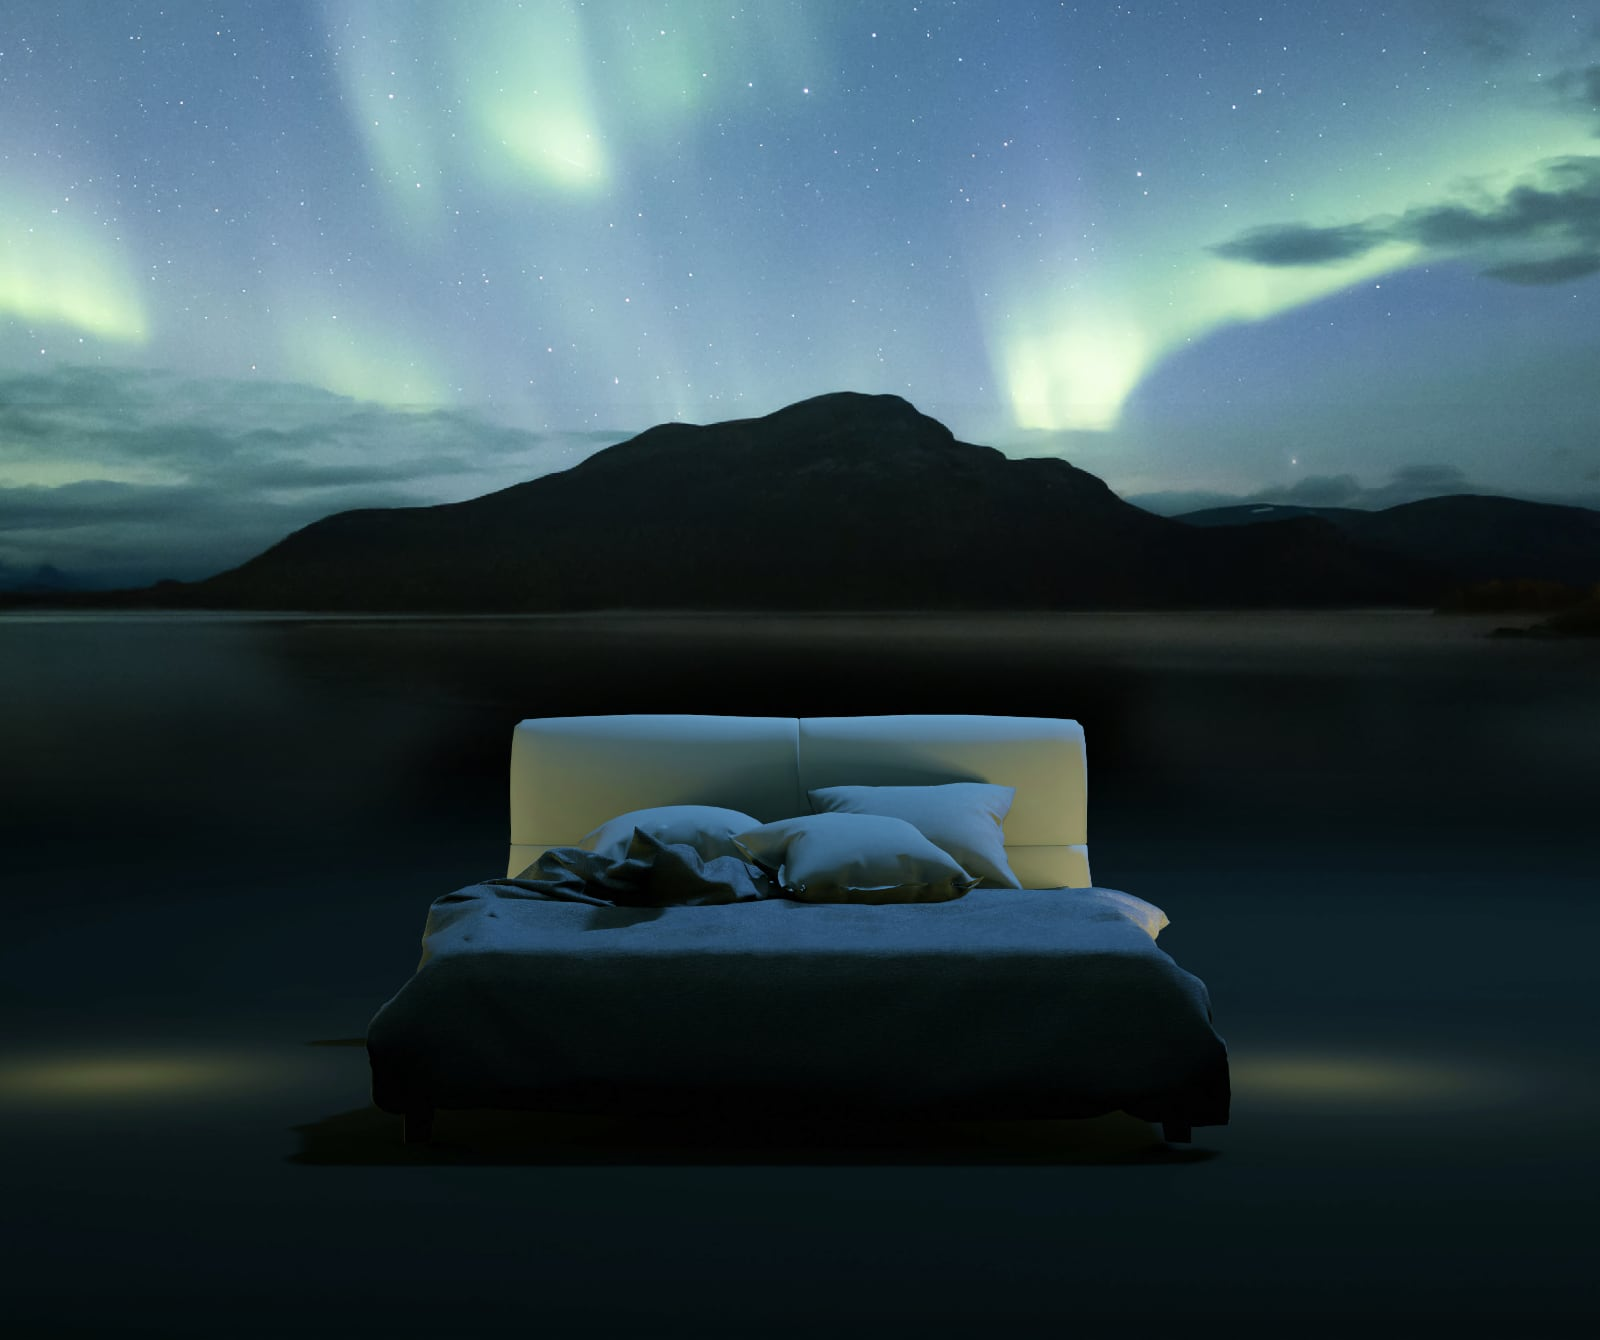 Photo of a bed at night-time